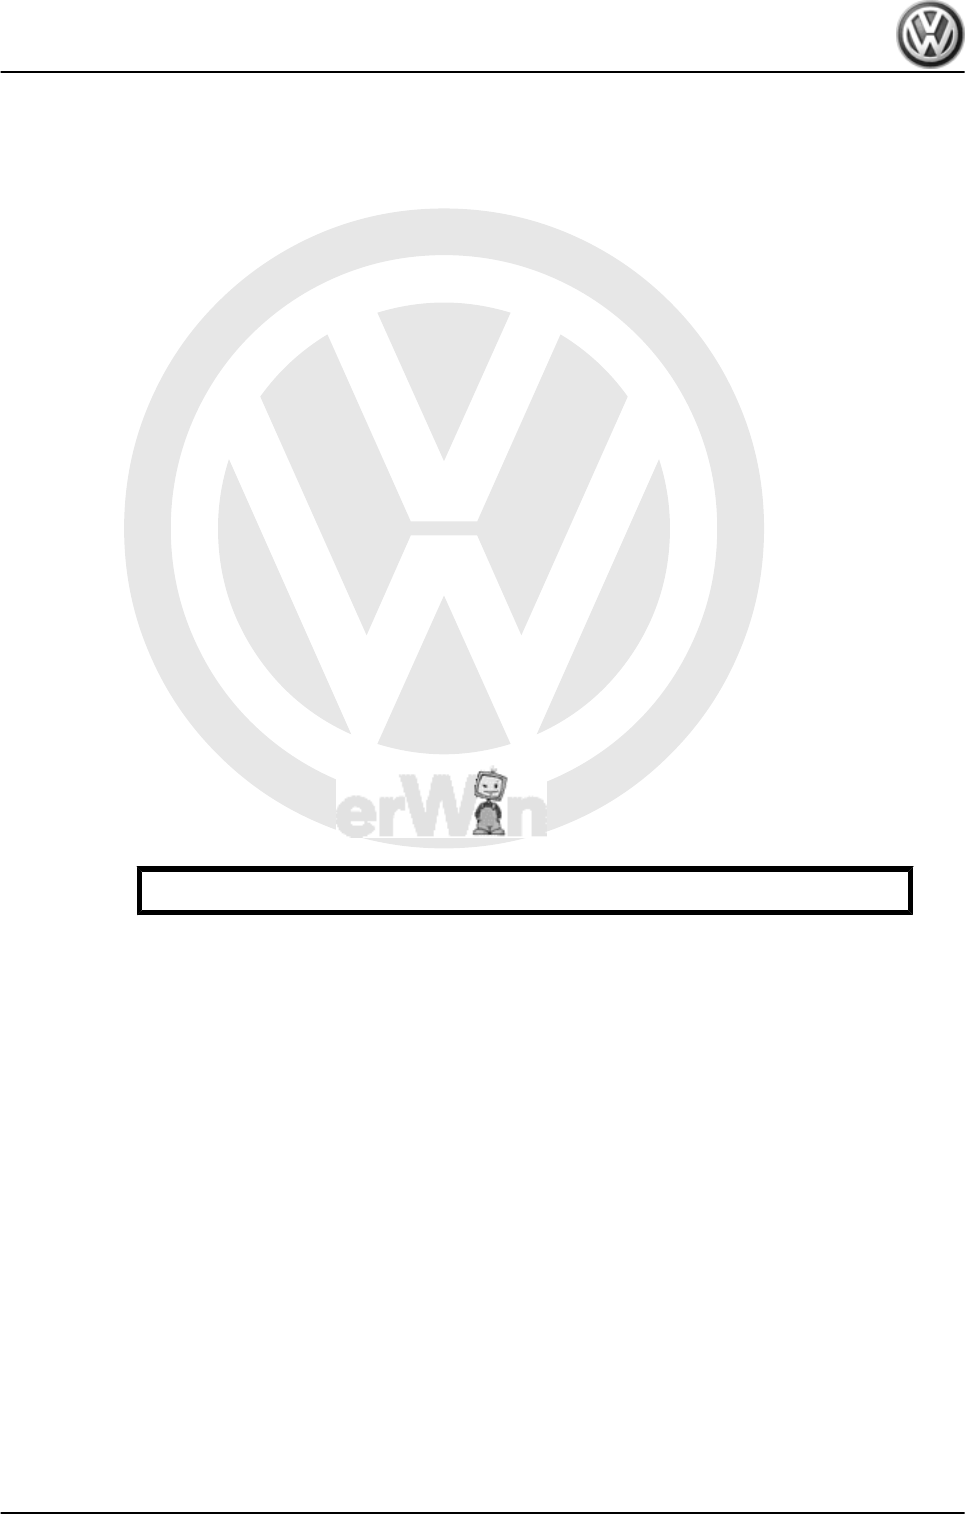 Volkswagen Lupo 1999 Misc Documents Wheels and Tires PDF